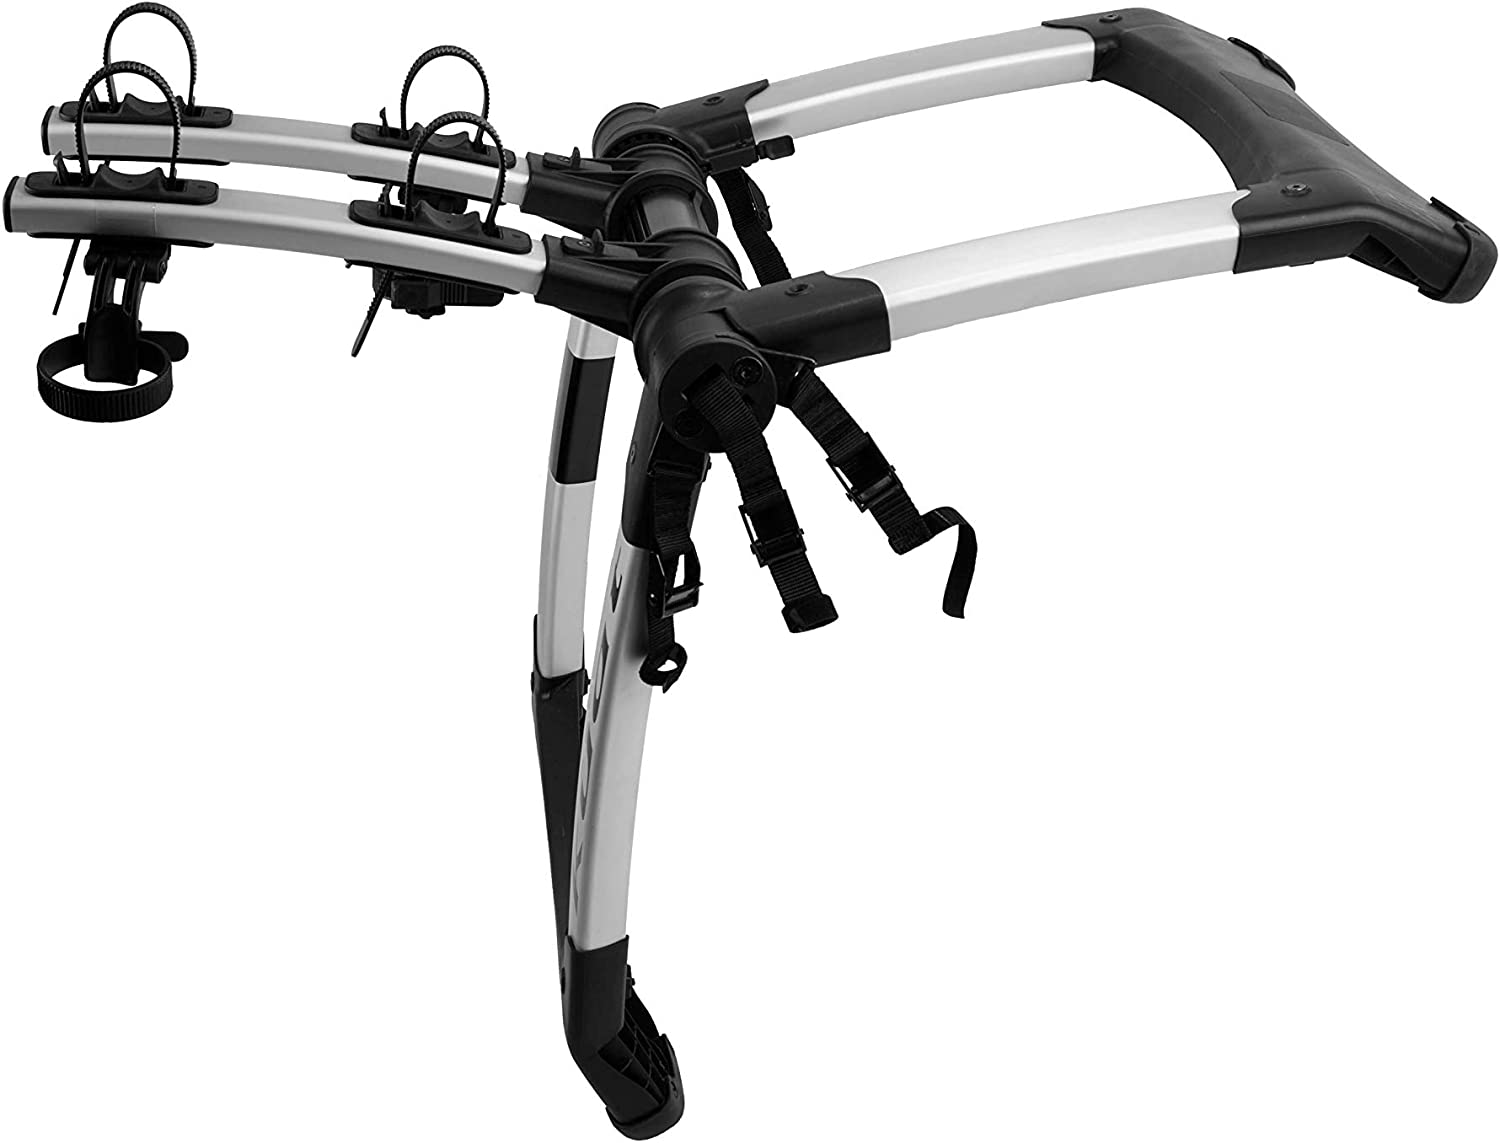 B07G1C811C Kuat Highline 2 Bike Trunk Rack Silver, One Size 713i6ovCaZL